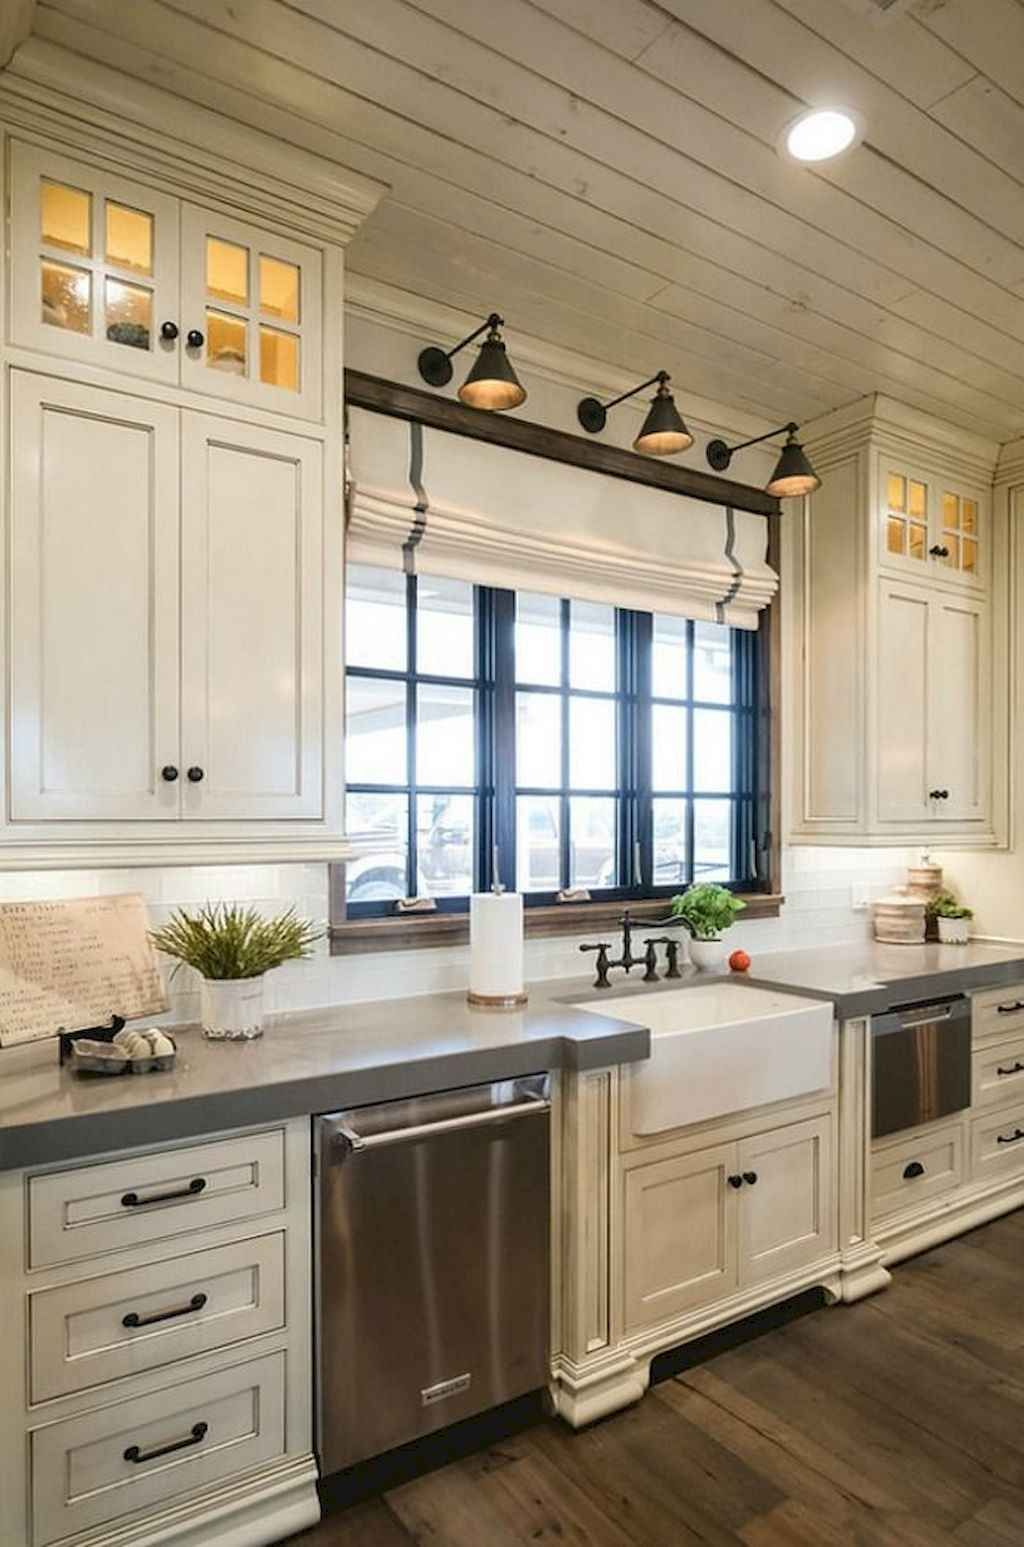 75 Best Farmhouse Kitchen Makeover Ideas - Country kitchen designs, Diy kitchen remodel, Beautiful kitchen cabinets, Rustic kitchen design, New kitchen cabinets, Modern farmhouse kitchens - Farmhouse kitchens blend a multitude of distinct styles cottage, vintage, rustic and tradition too  And if you're envisioning a space that holds so many points of interest, you'll need to know the necessities that help to create and design it … Continue Reading →